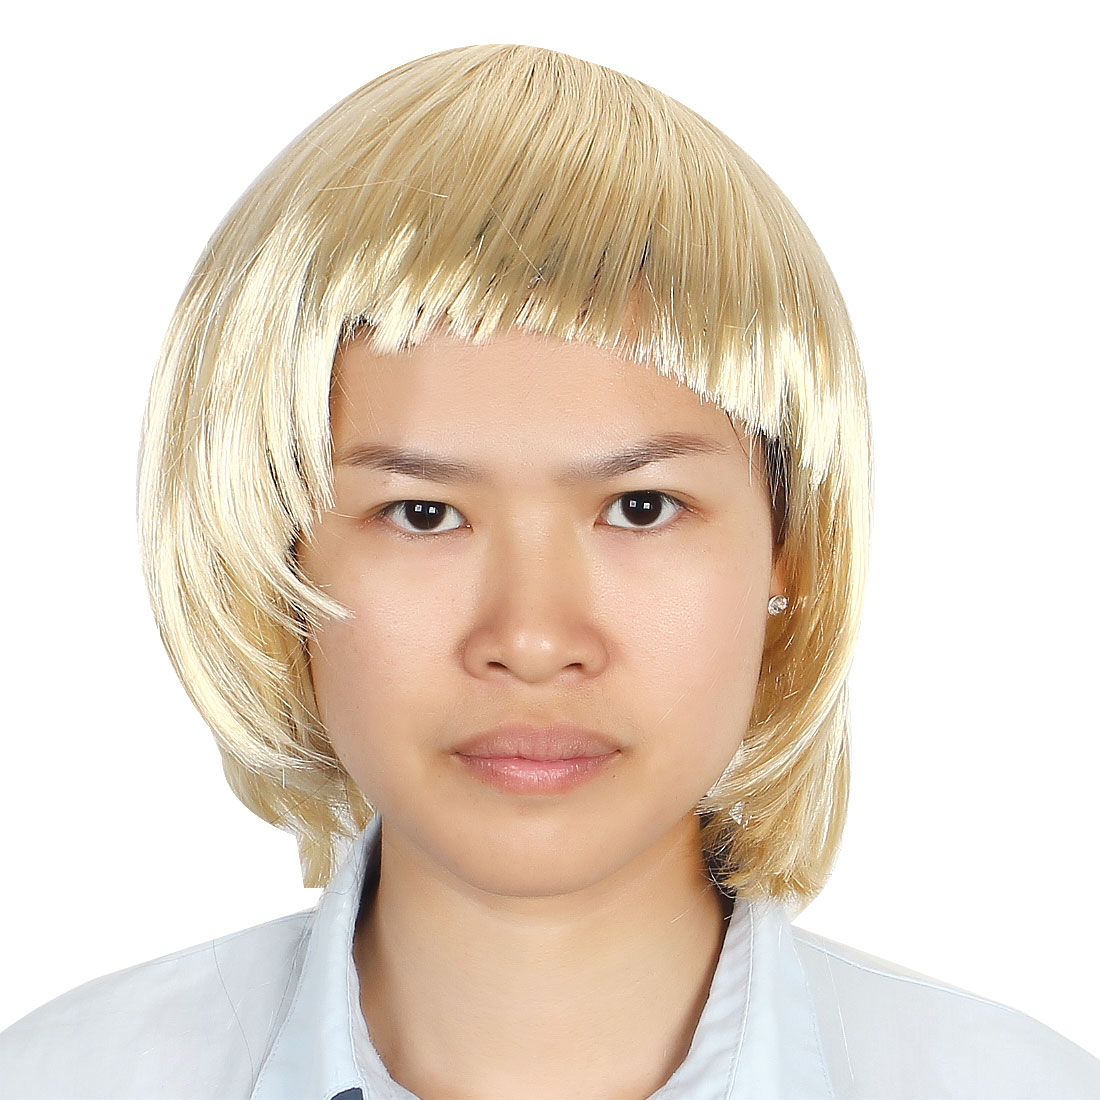 Ladies Woman Short Cut Straight Hairpiece Flat Bangs Hair Play Costume Full Wig Party